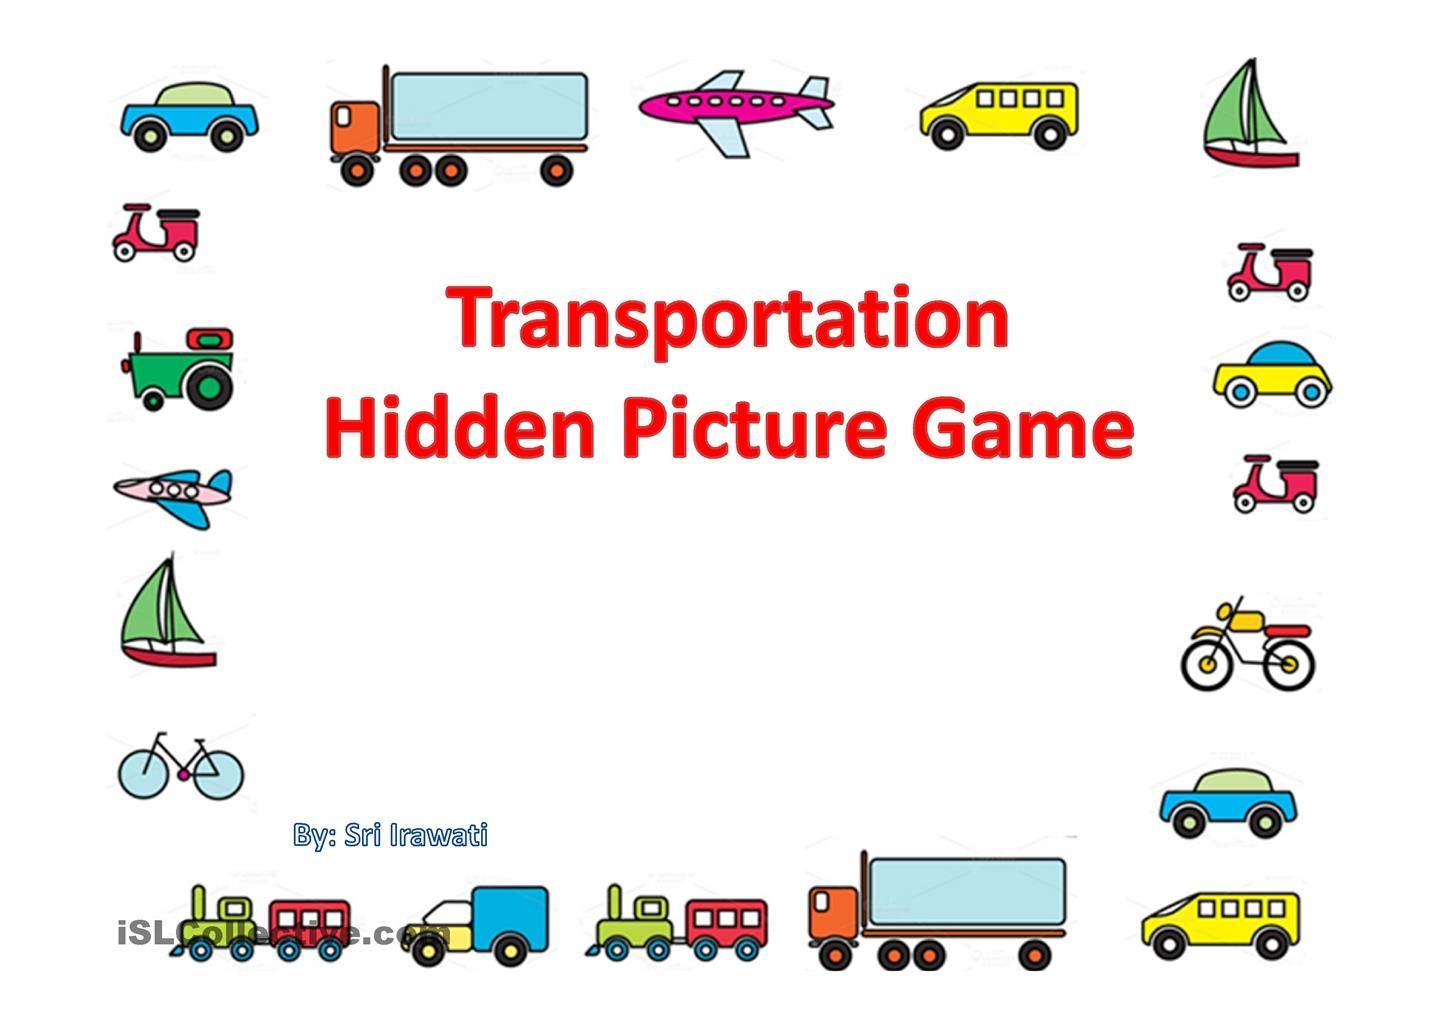 Transportation Hidden Picture